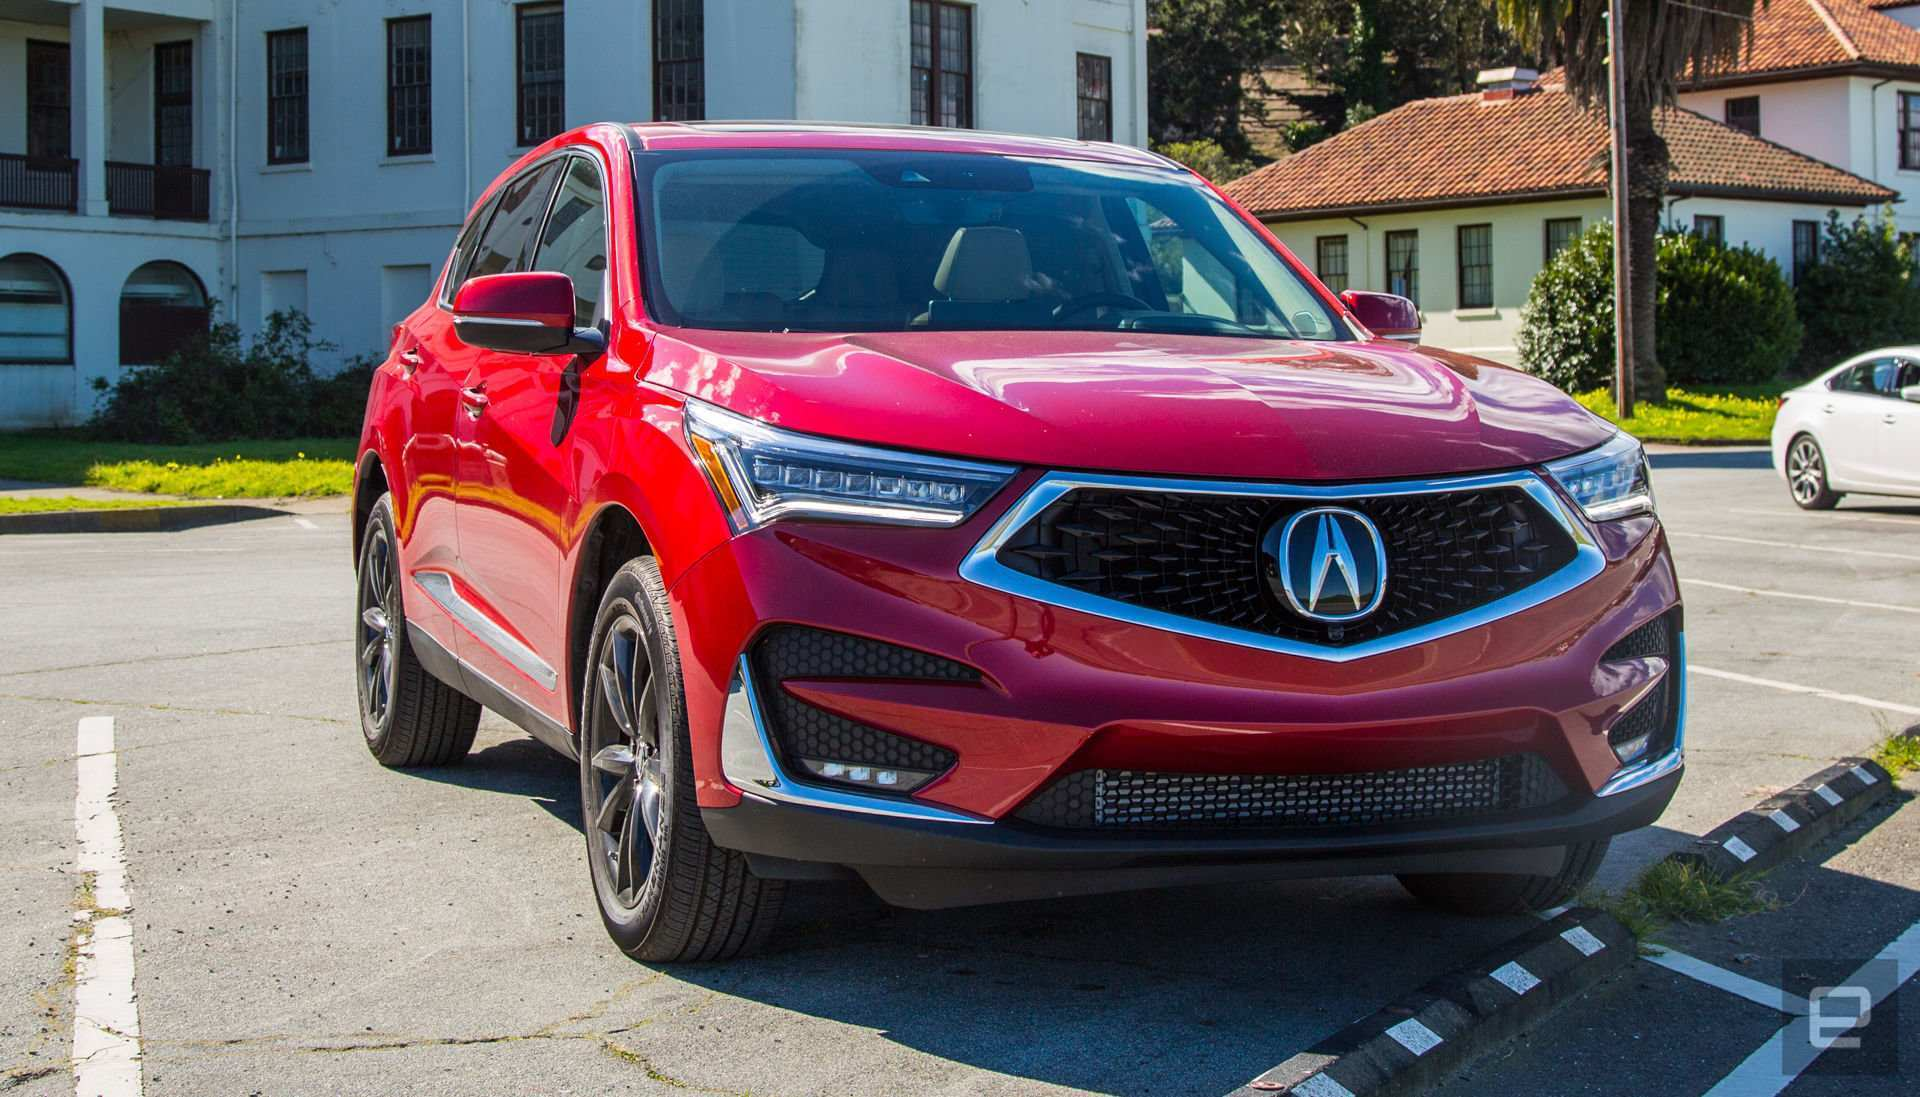 59 Gallery of The Acura Rdx 2019 Lane Keep Assist Review Specs and Review by The Acura Rdx 2019 Lane Keep Assist Review